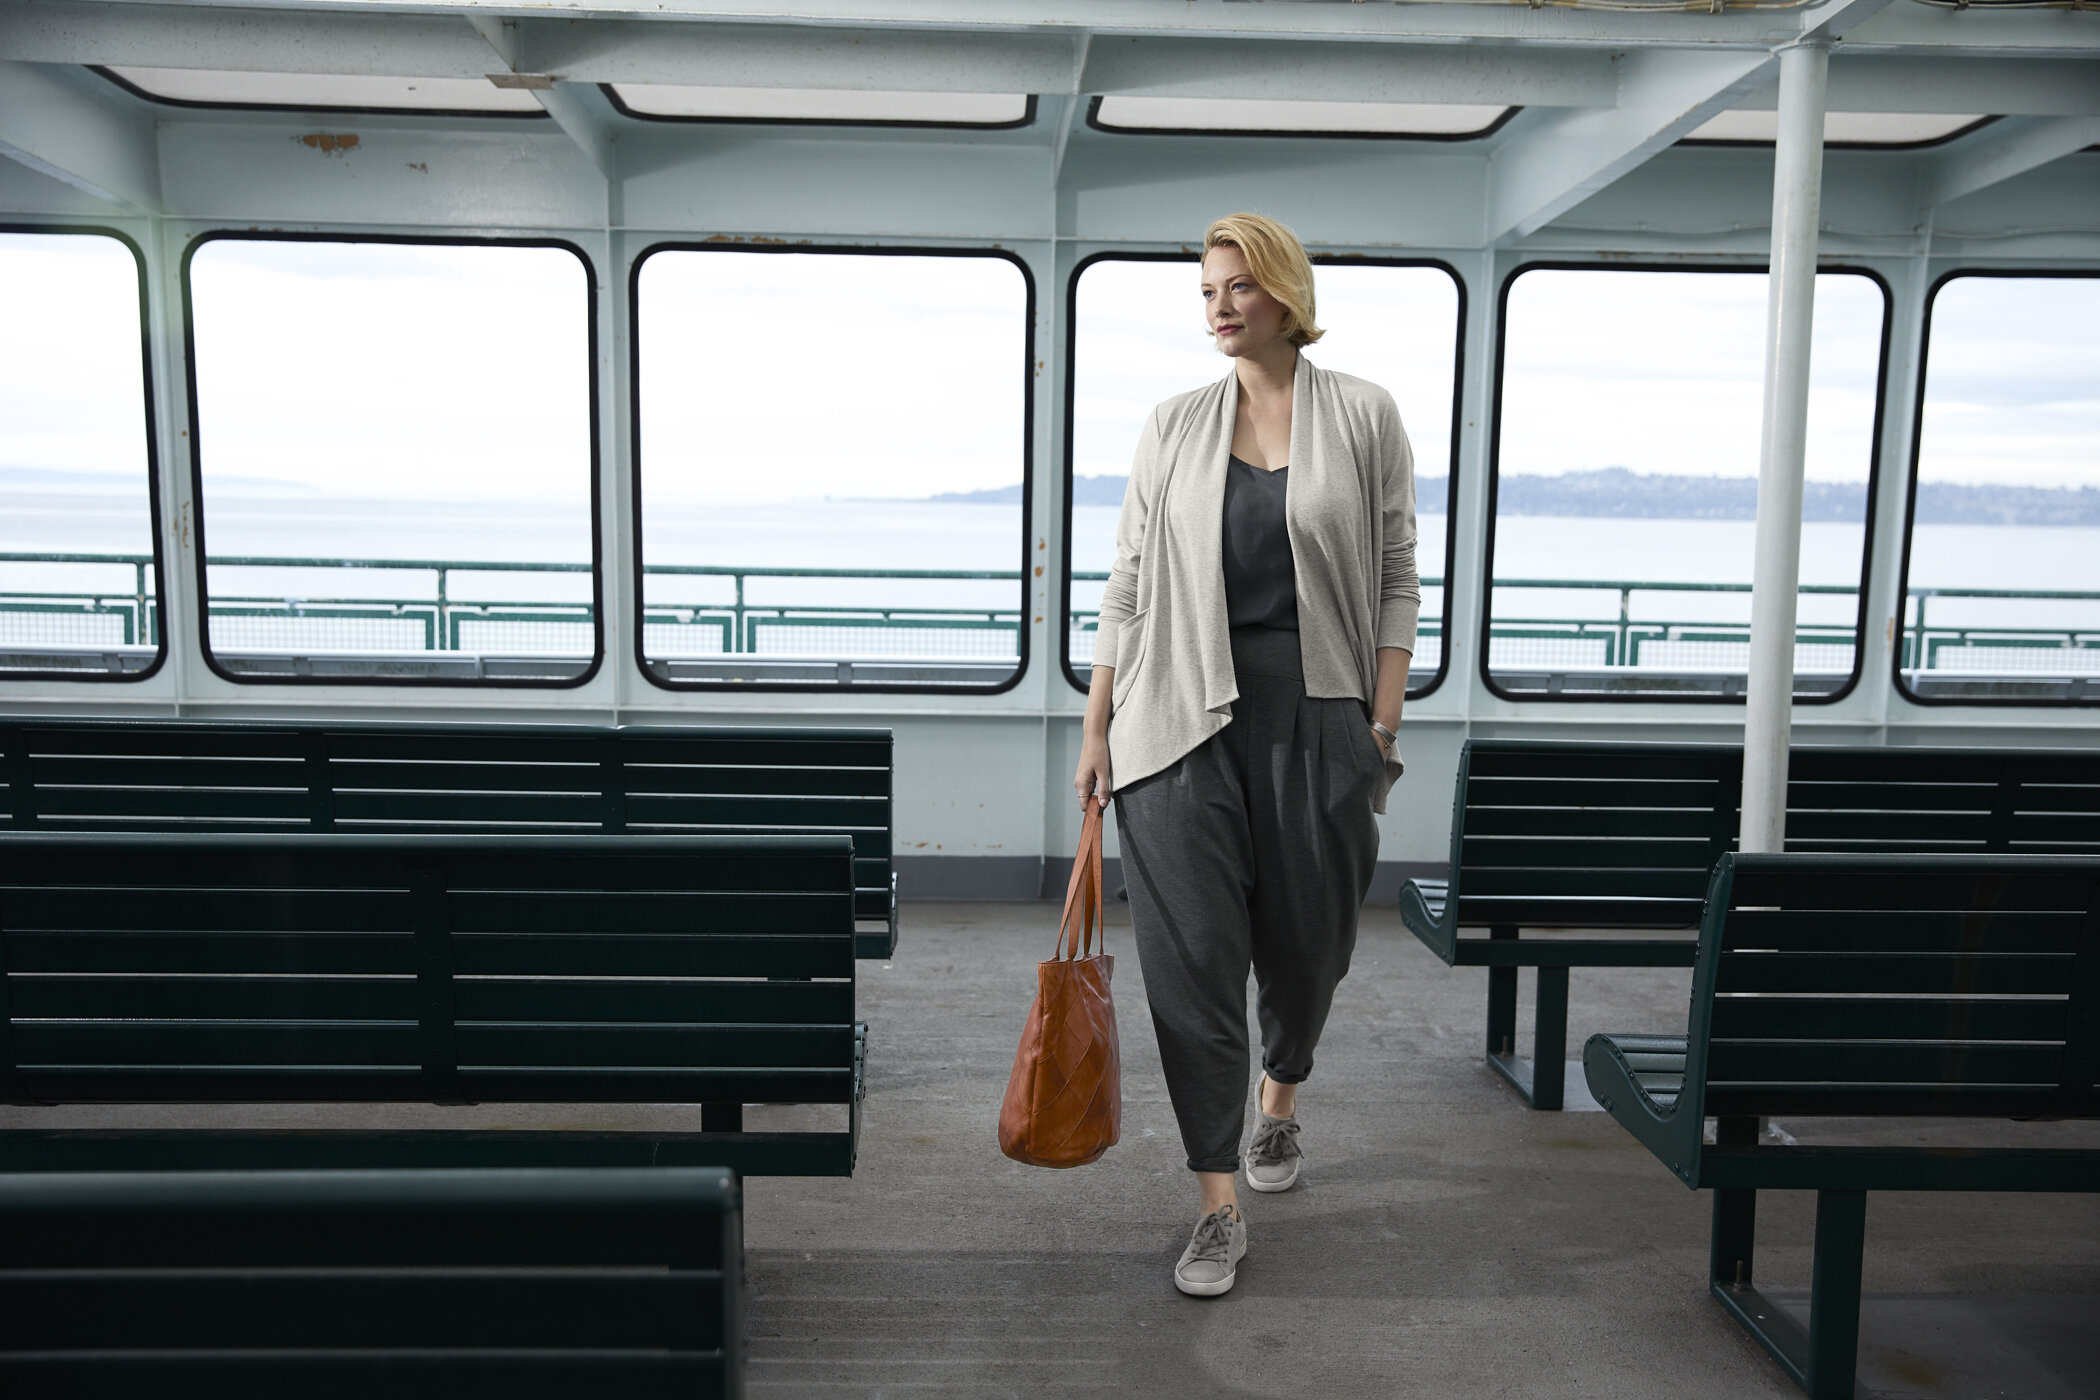 The Staten Island Ferry never looked so good.